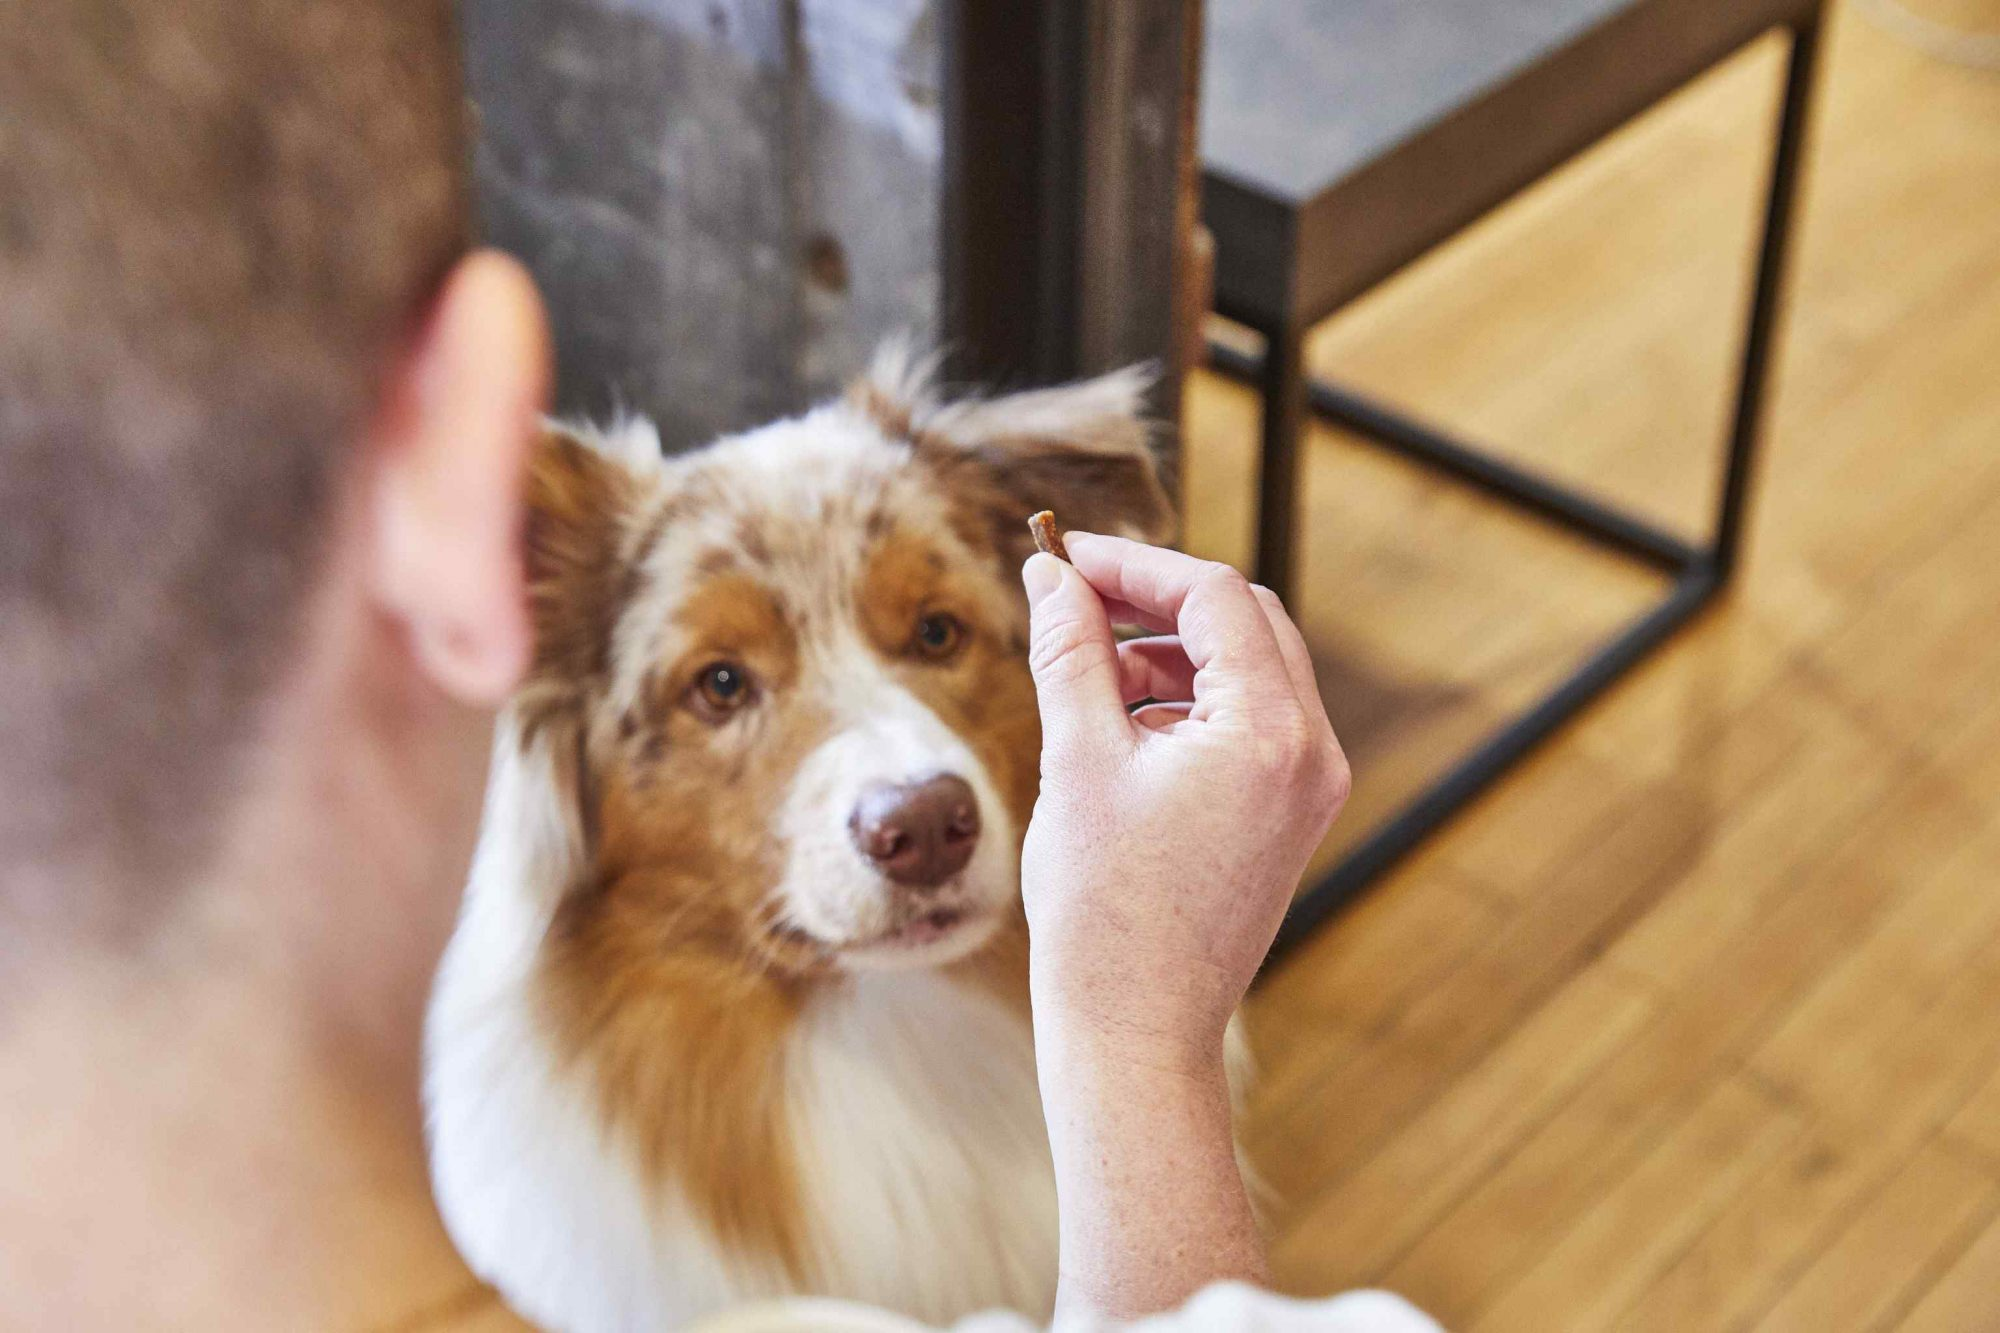 Dog looks upward at treat in owner's hand while sitting